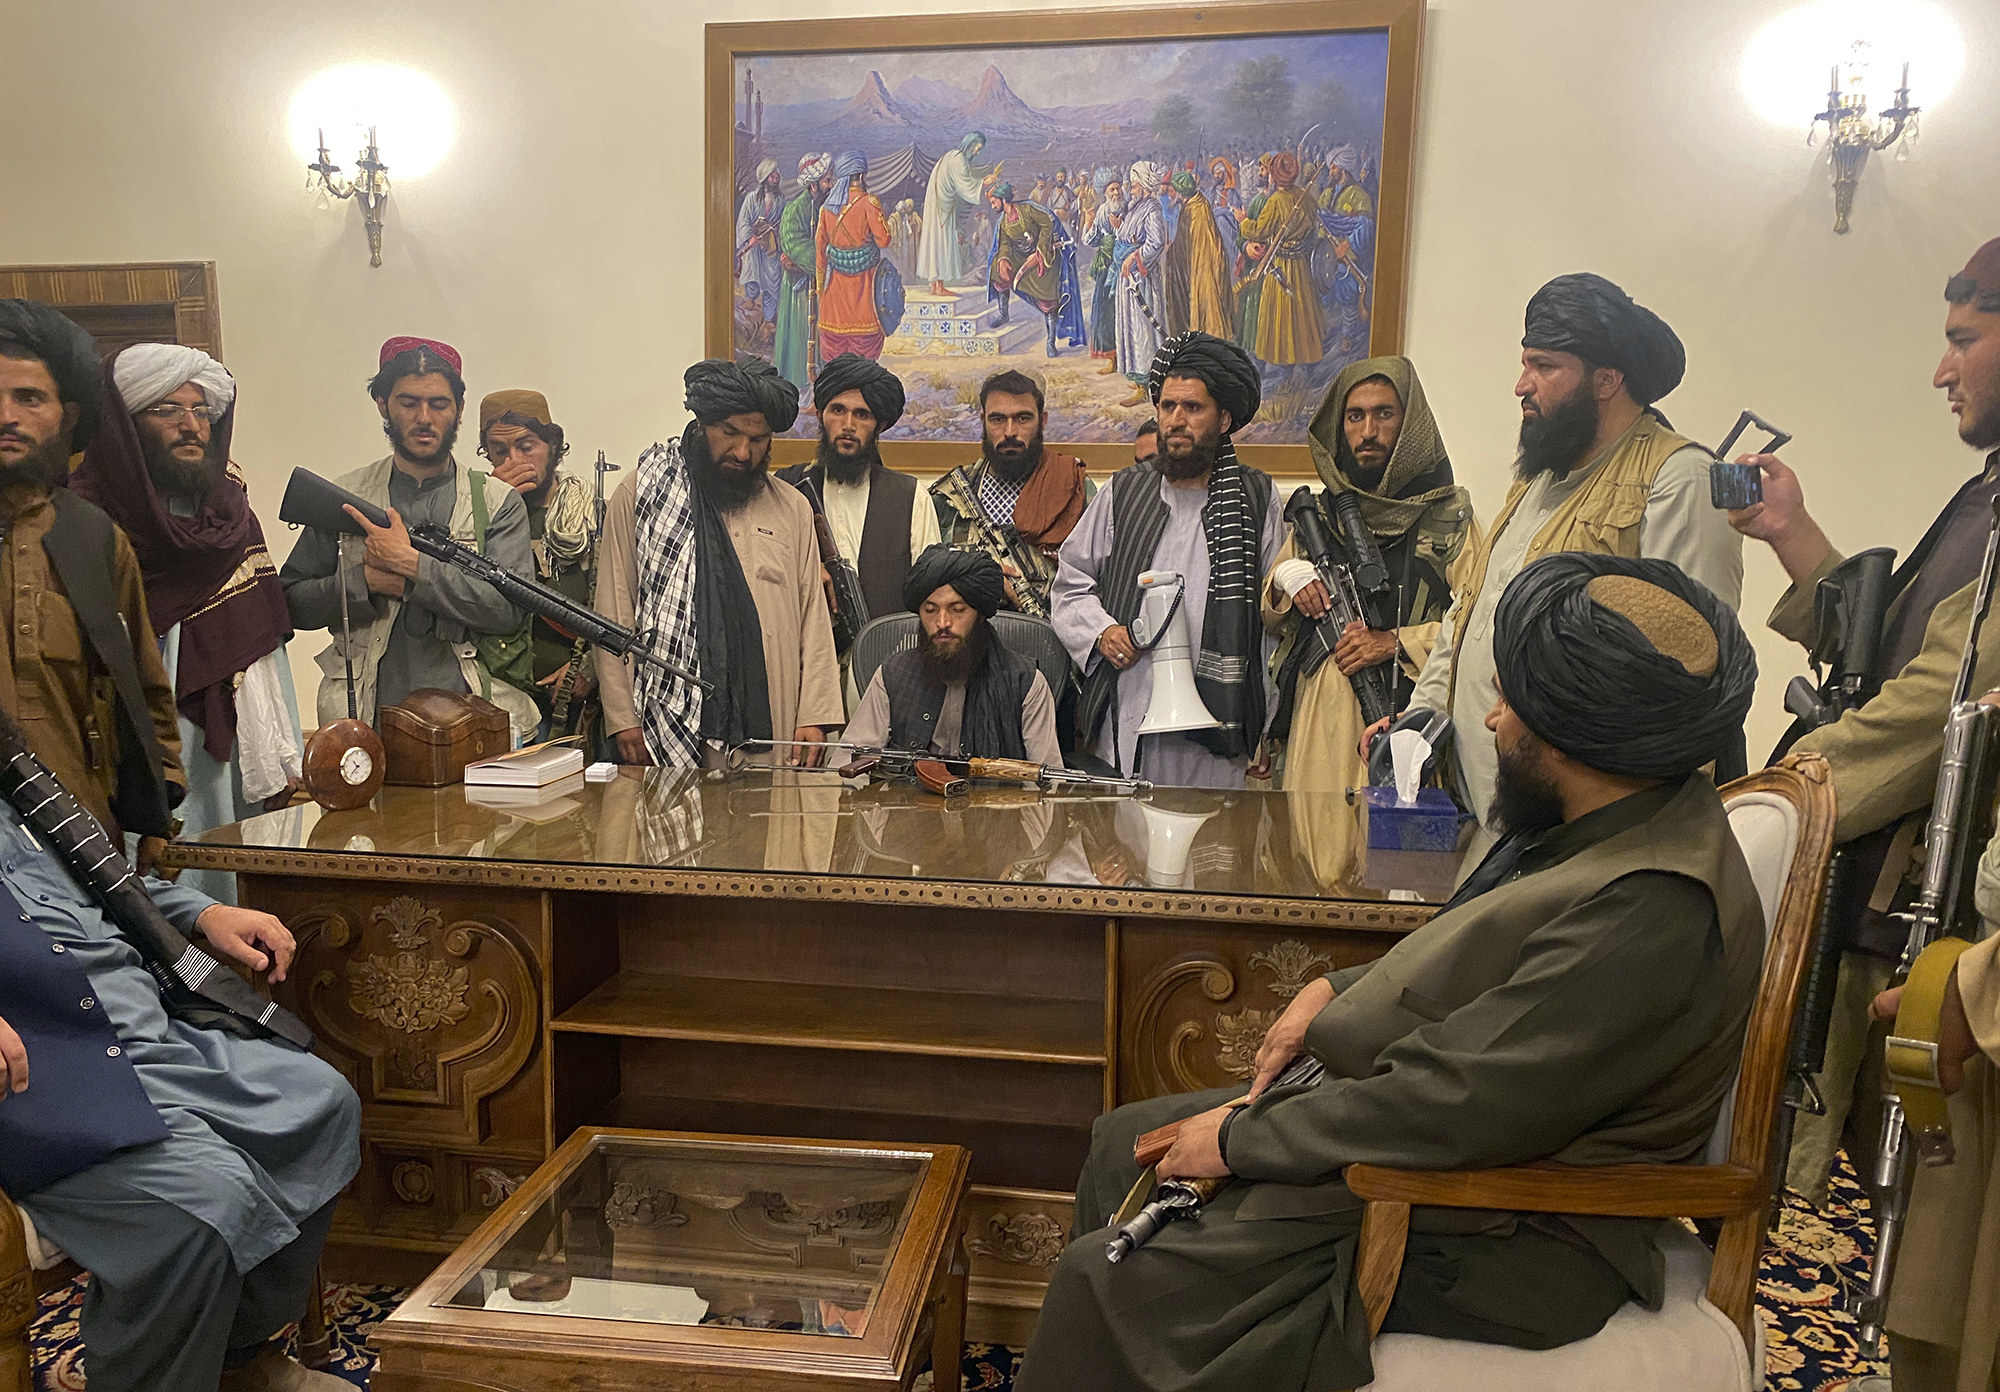 A group shot of Taliban fighters with guns at the presidential desk